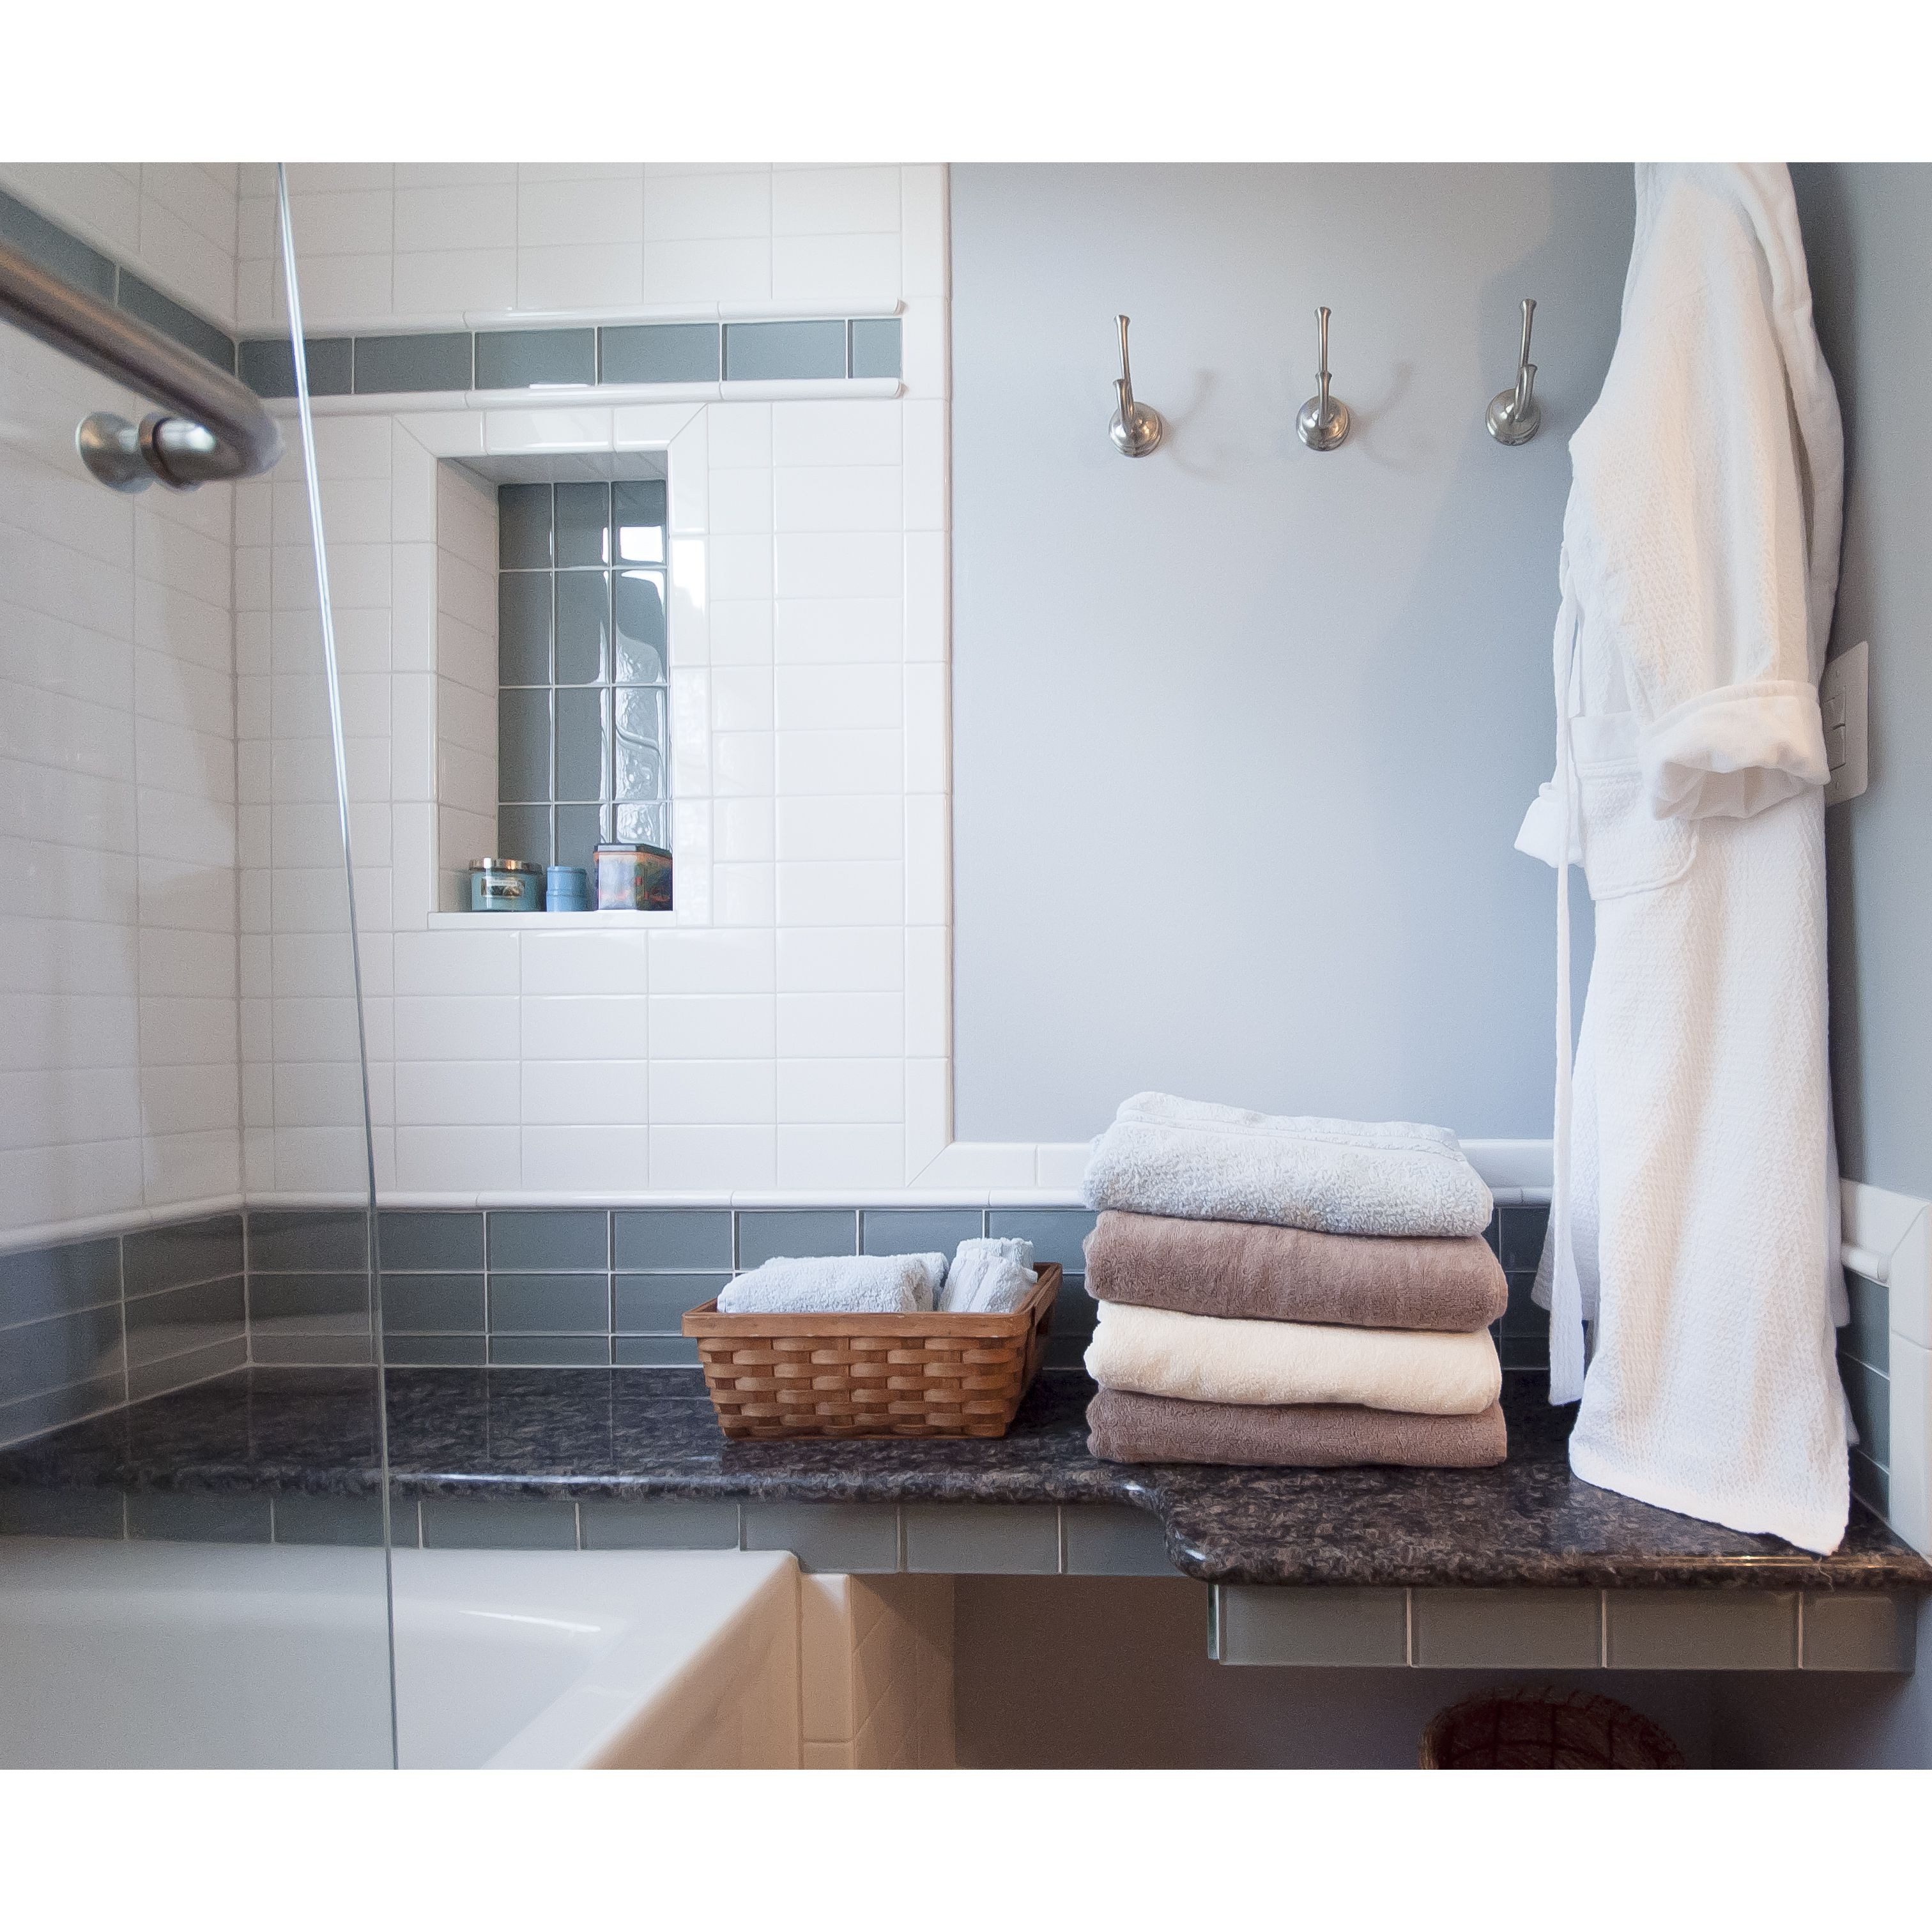 Our Own Bathroom Remodeling Results Cornerstone